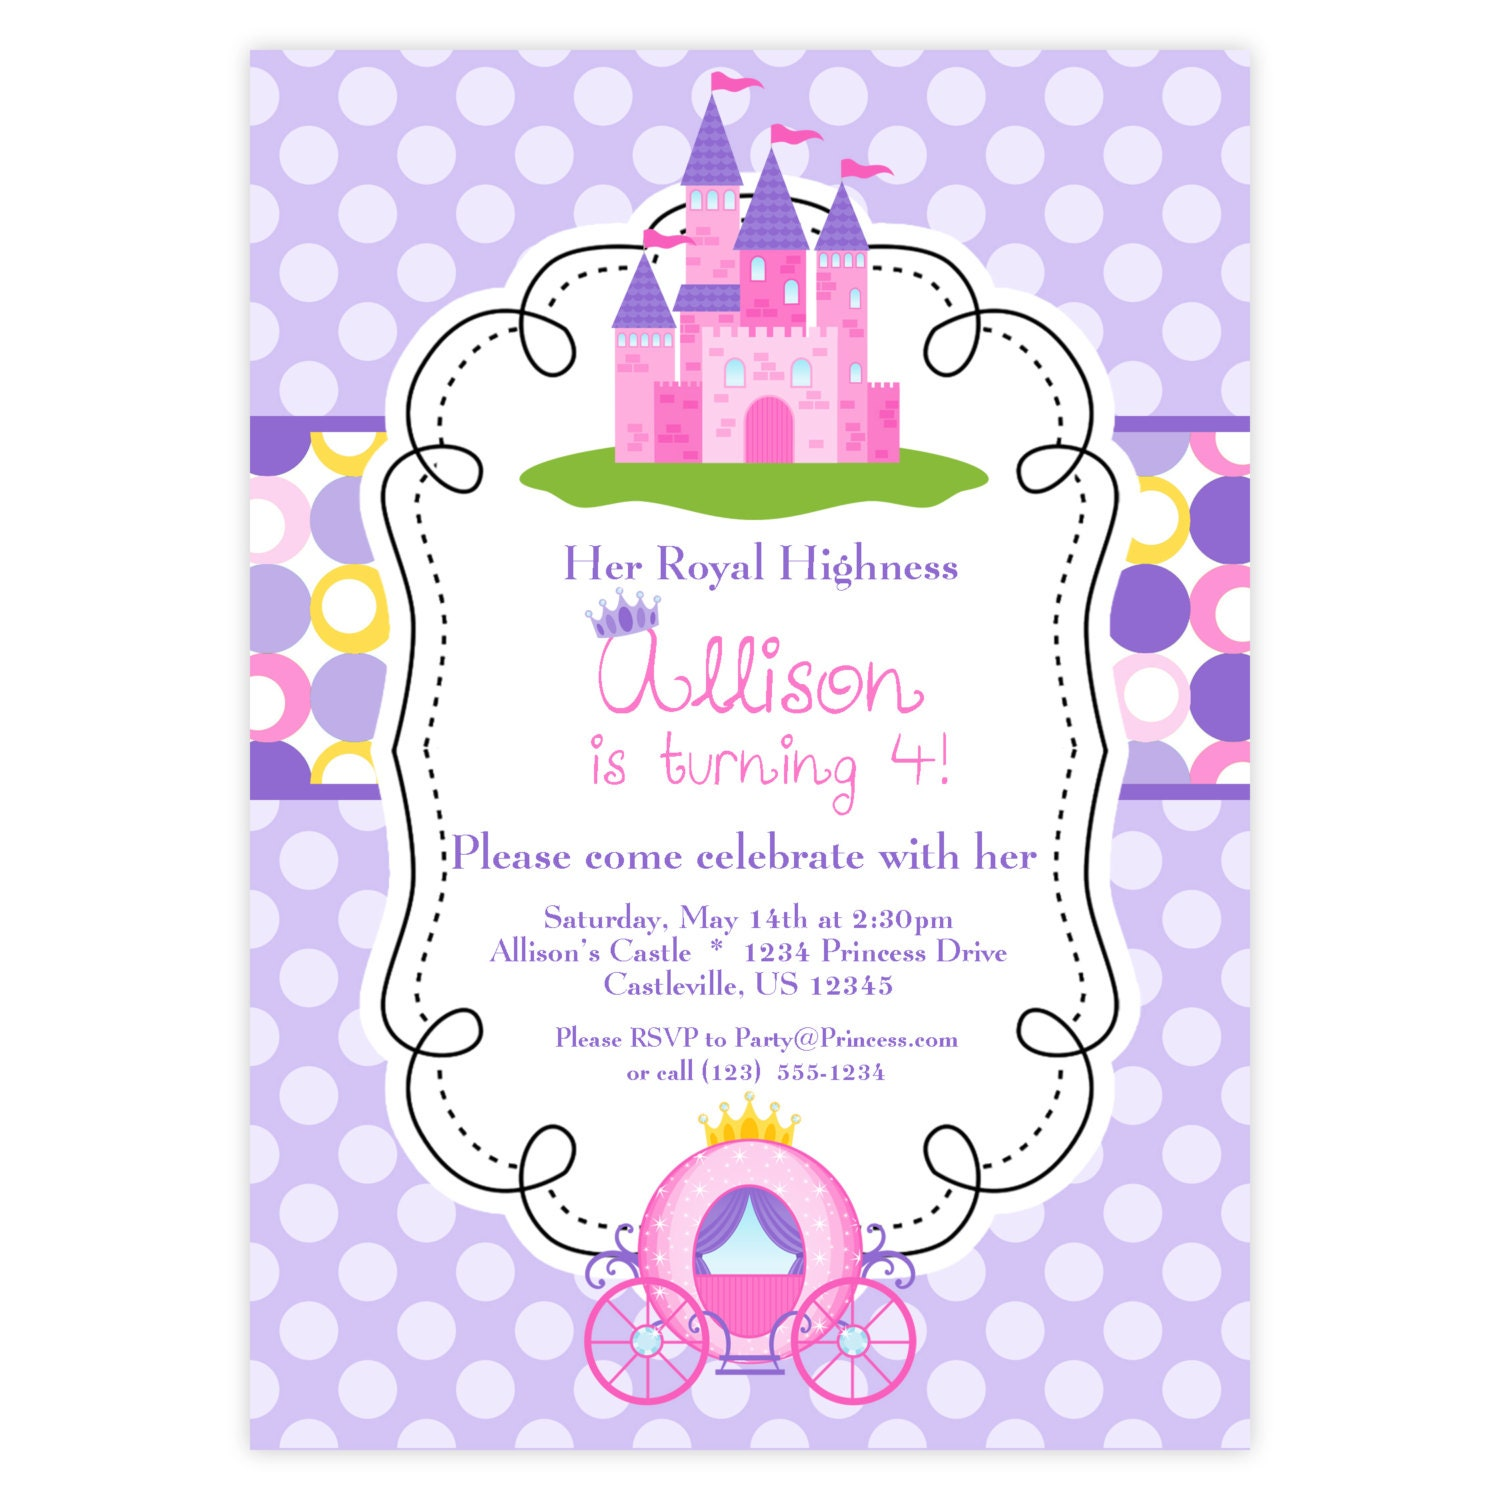 Disney Princess Party Invites as adorable invitation template